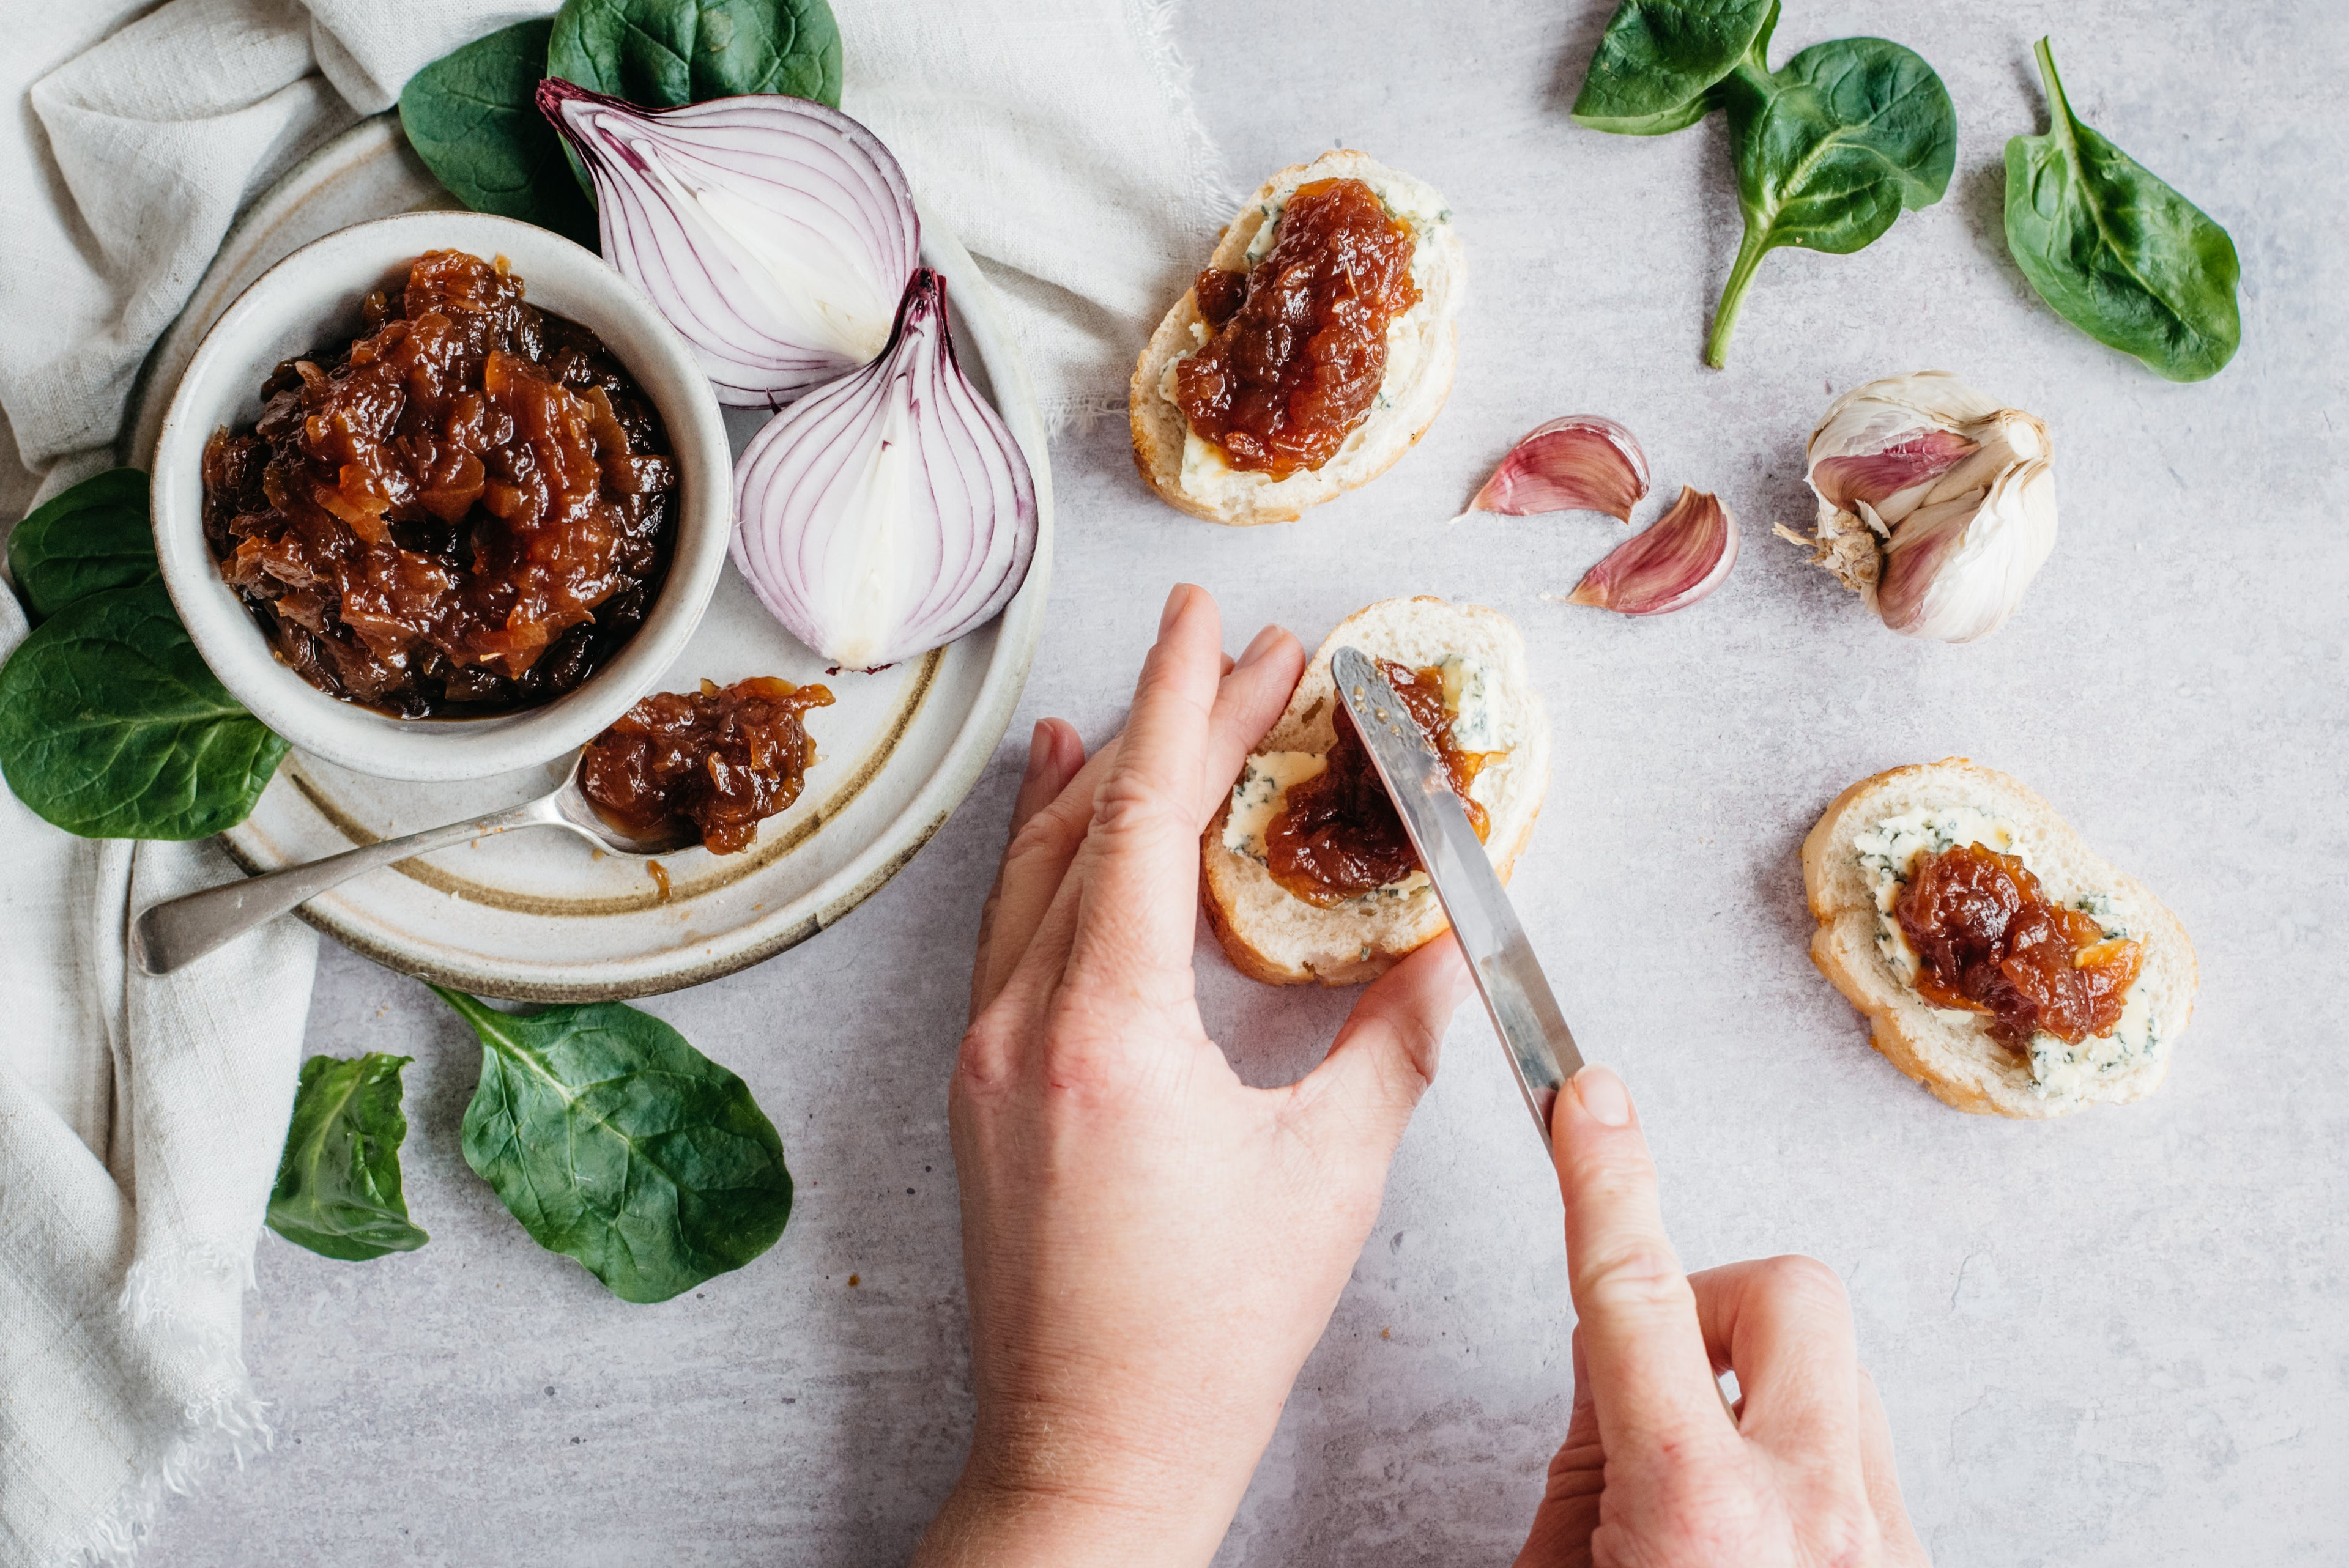 Overhead shot of hands spreading onion chutney on bread, herbs scattered around and pot of onion chutney with spoon